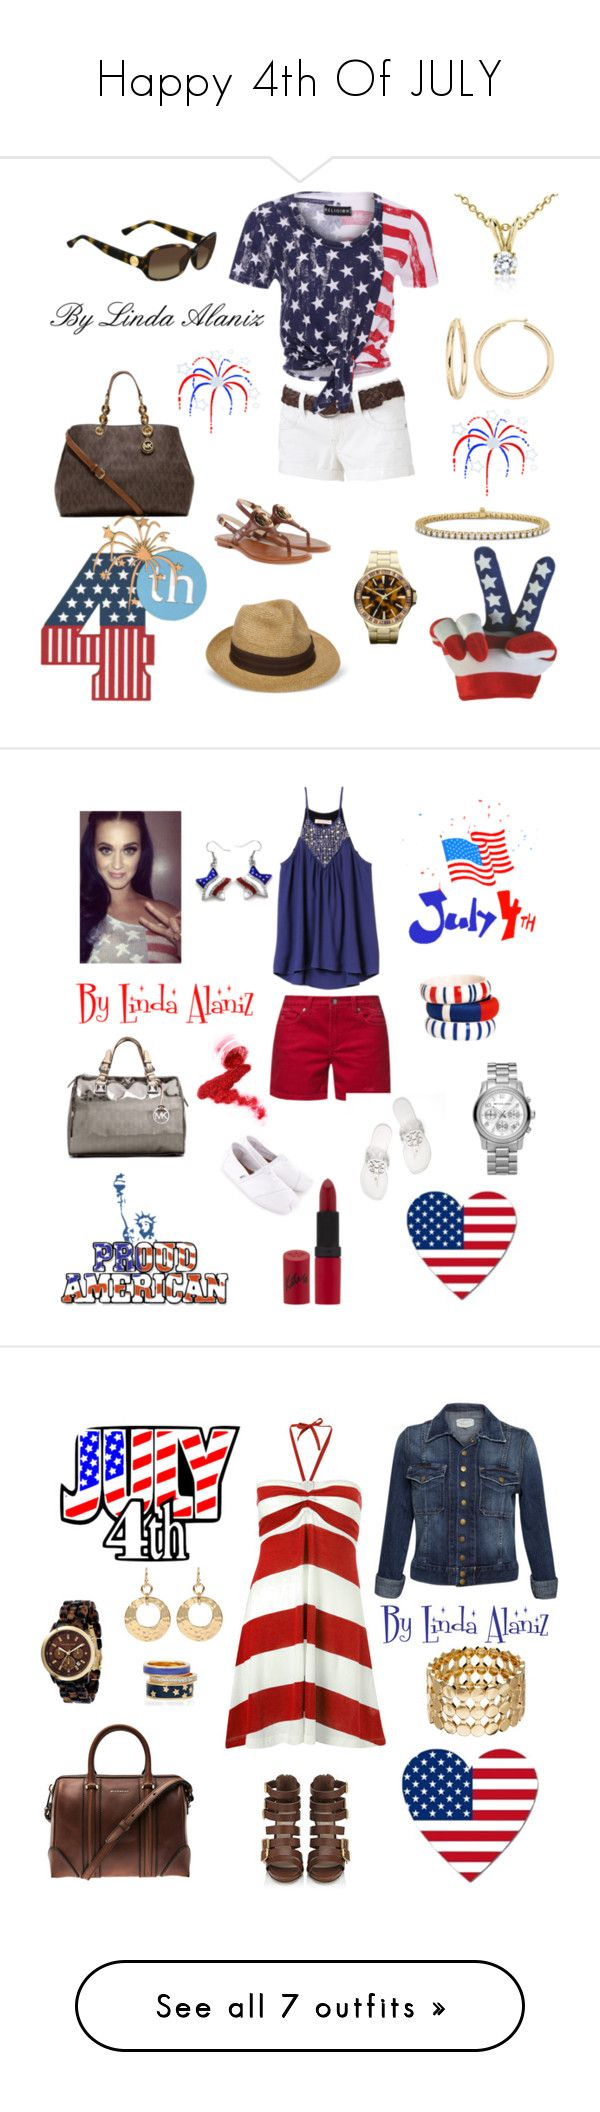 Happy 4th Of JULY by linda-alaniz on Polyvore featuring polyvore fashion style Wallflower Religion Clothing Michael Kors Ice Blue Nile clothing Mazine Rebecca Taylor By Malene Birger MICHAEL Michael Kors Rimmel TOMS Tory Burch Wildfox Current/Elliott French Connection Carvela Kurt Geiger Givenchy Amrita Singh DesignSix Alice + Olivia Carritz Dolce&Gabbana ABS by Allen Schwartz GUESS Lori's Shoes Sole Society Elizabeth Arden Guerlain Fantasy Jewelry Box New Look rag & bone/JEAN Oasis Kaliko…